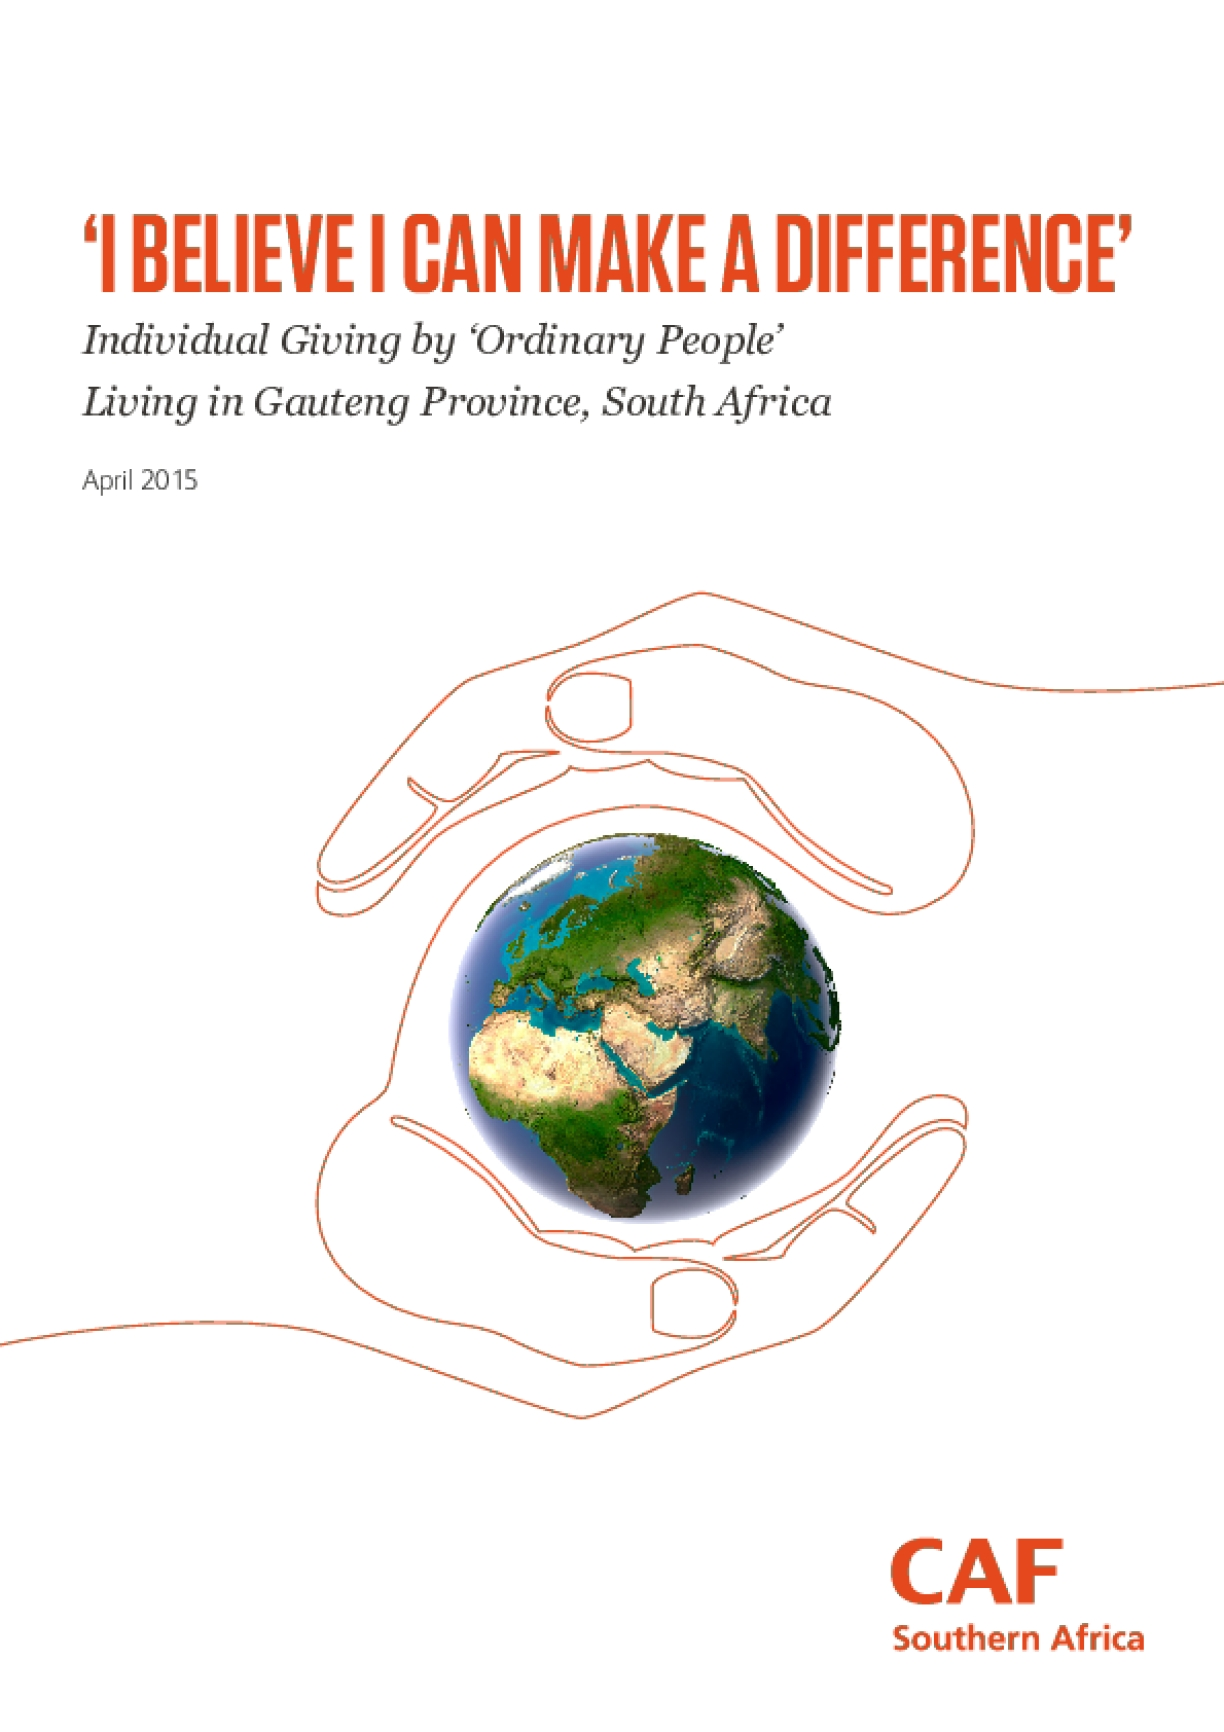 I Believe I Can Make a Difference: Individual Giving by Ordinary People, Living in Gauteng Province, South Africa